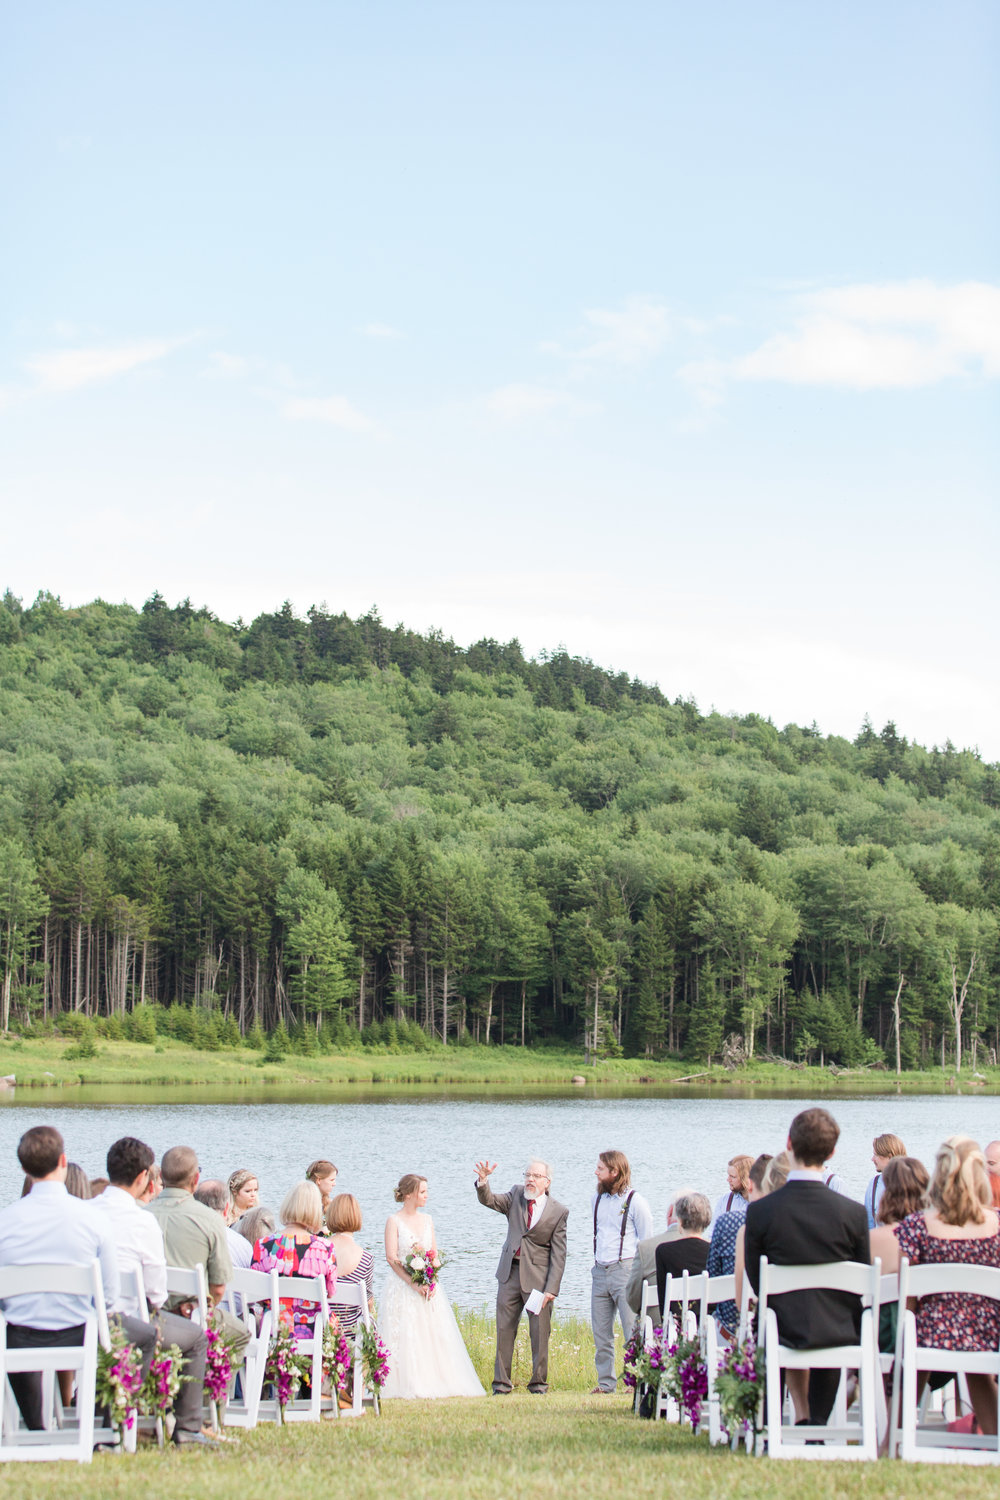 authentic genuine wedding photography in wv- lakeside mountain ceremony wedding wv